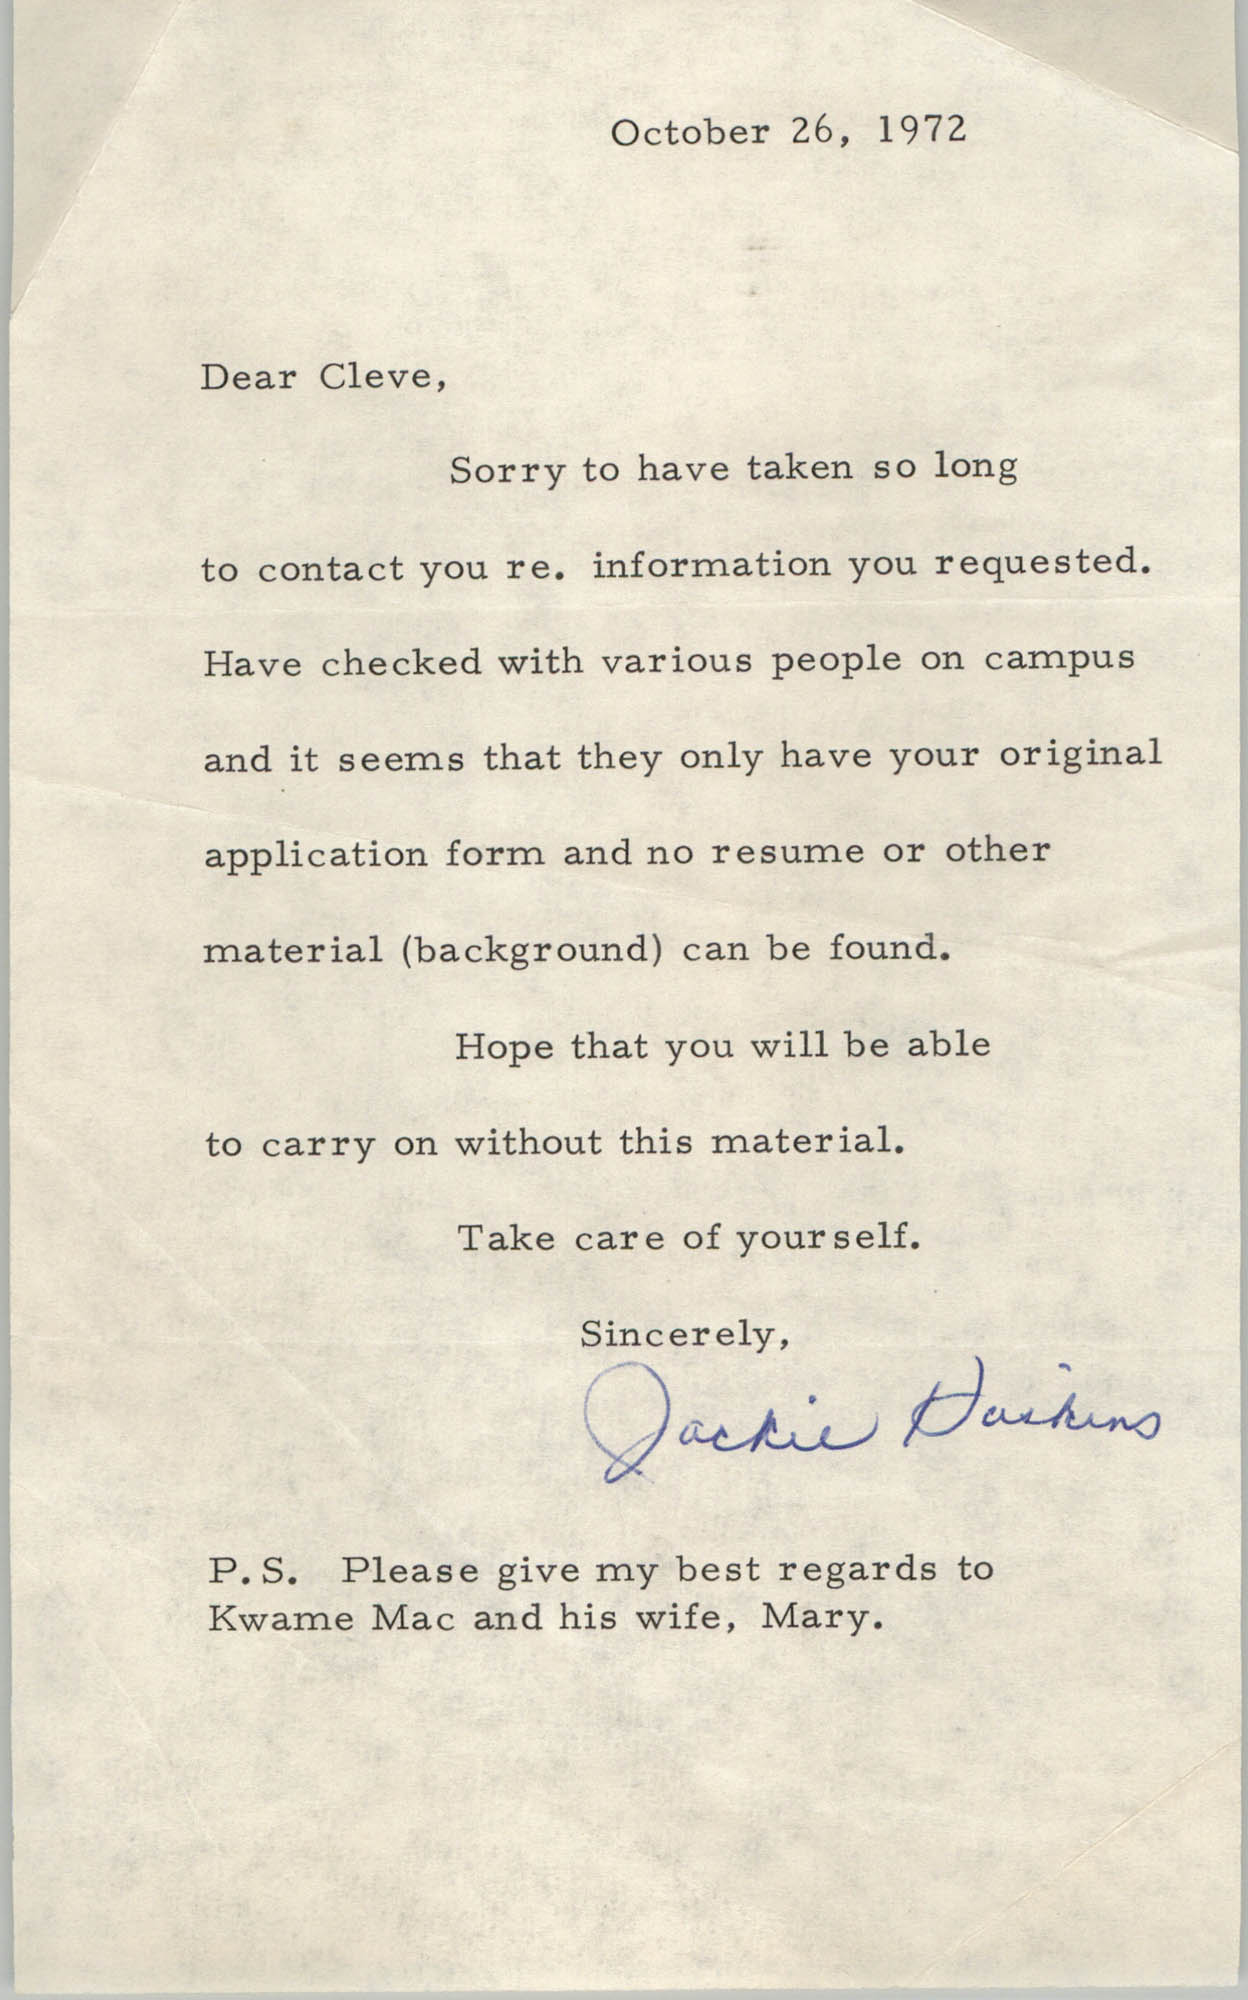 Letter from Jackie Haskins to Cleveland Sellers, October 26, 1972